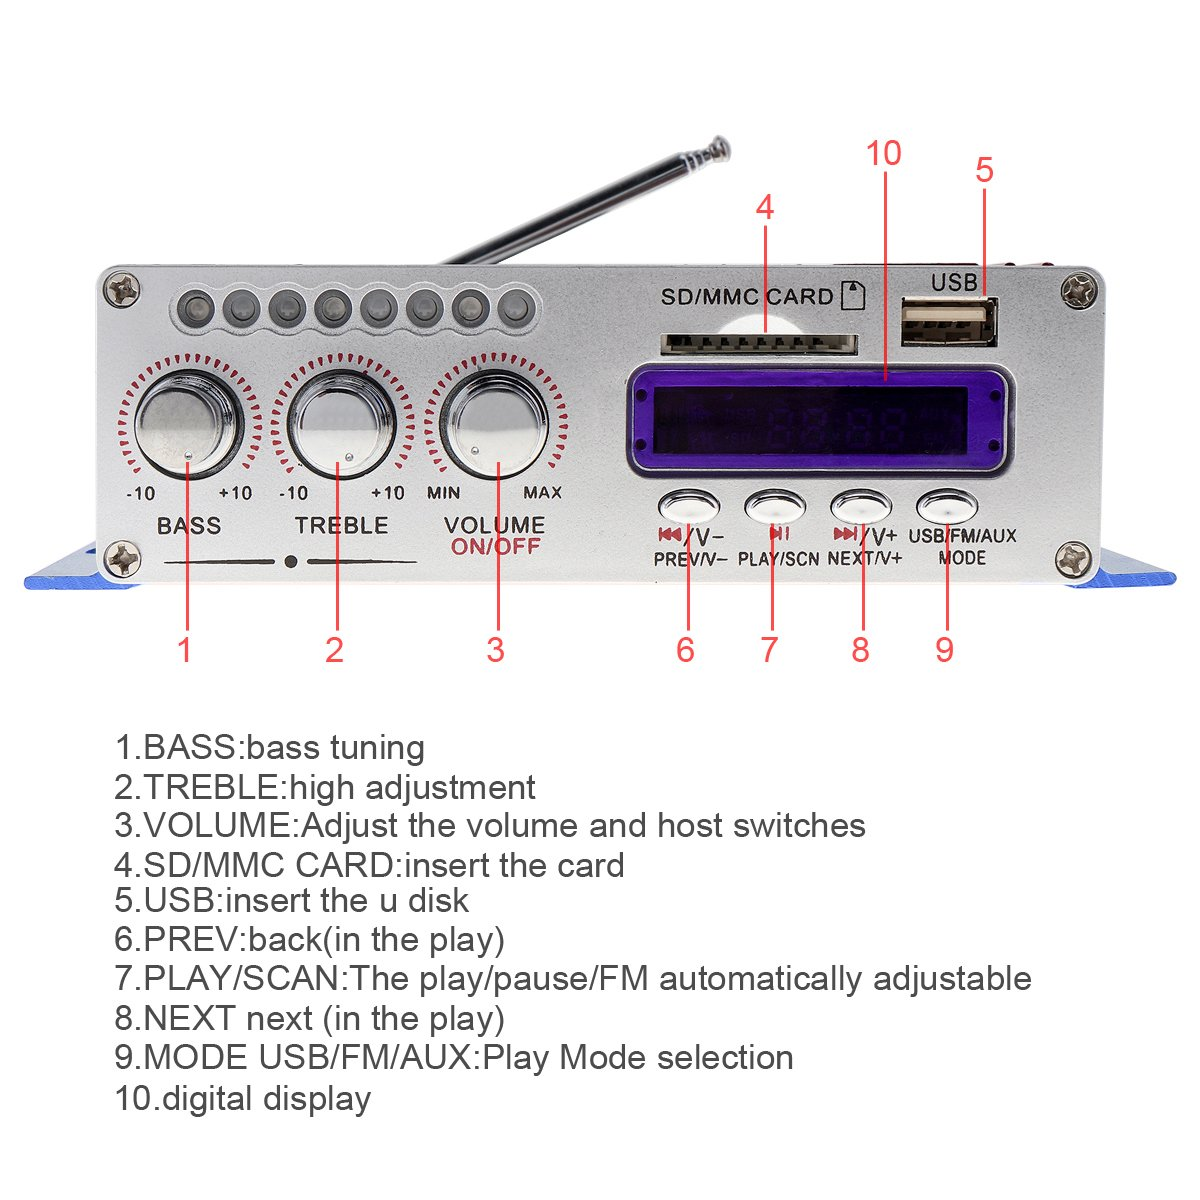 Kentiger Fm Audio Mp3 Speaker Car Bluetooth Amplifier Speed Small Tiger Model Remote Control Boat Receiver Circuit Board Hifi Mini 2 Channel Digital Power Player With Led Light For Ipod Motorcycle